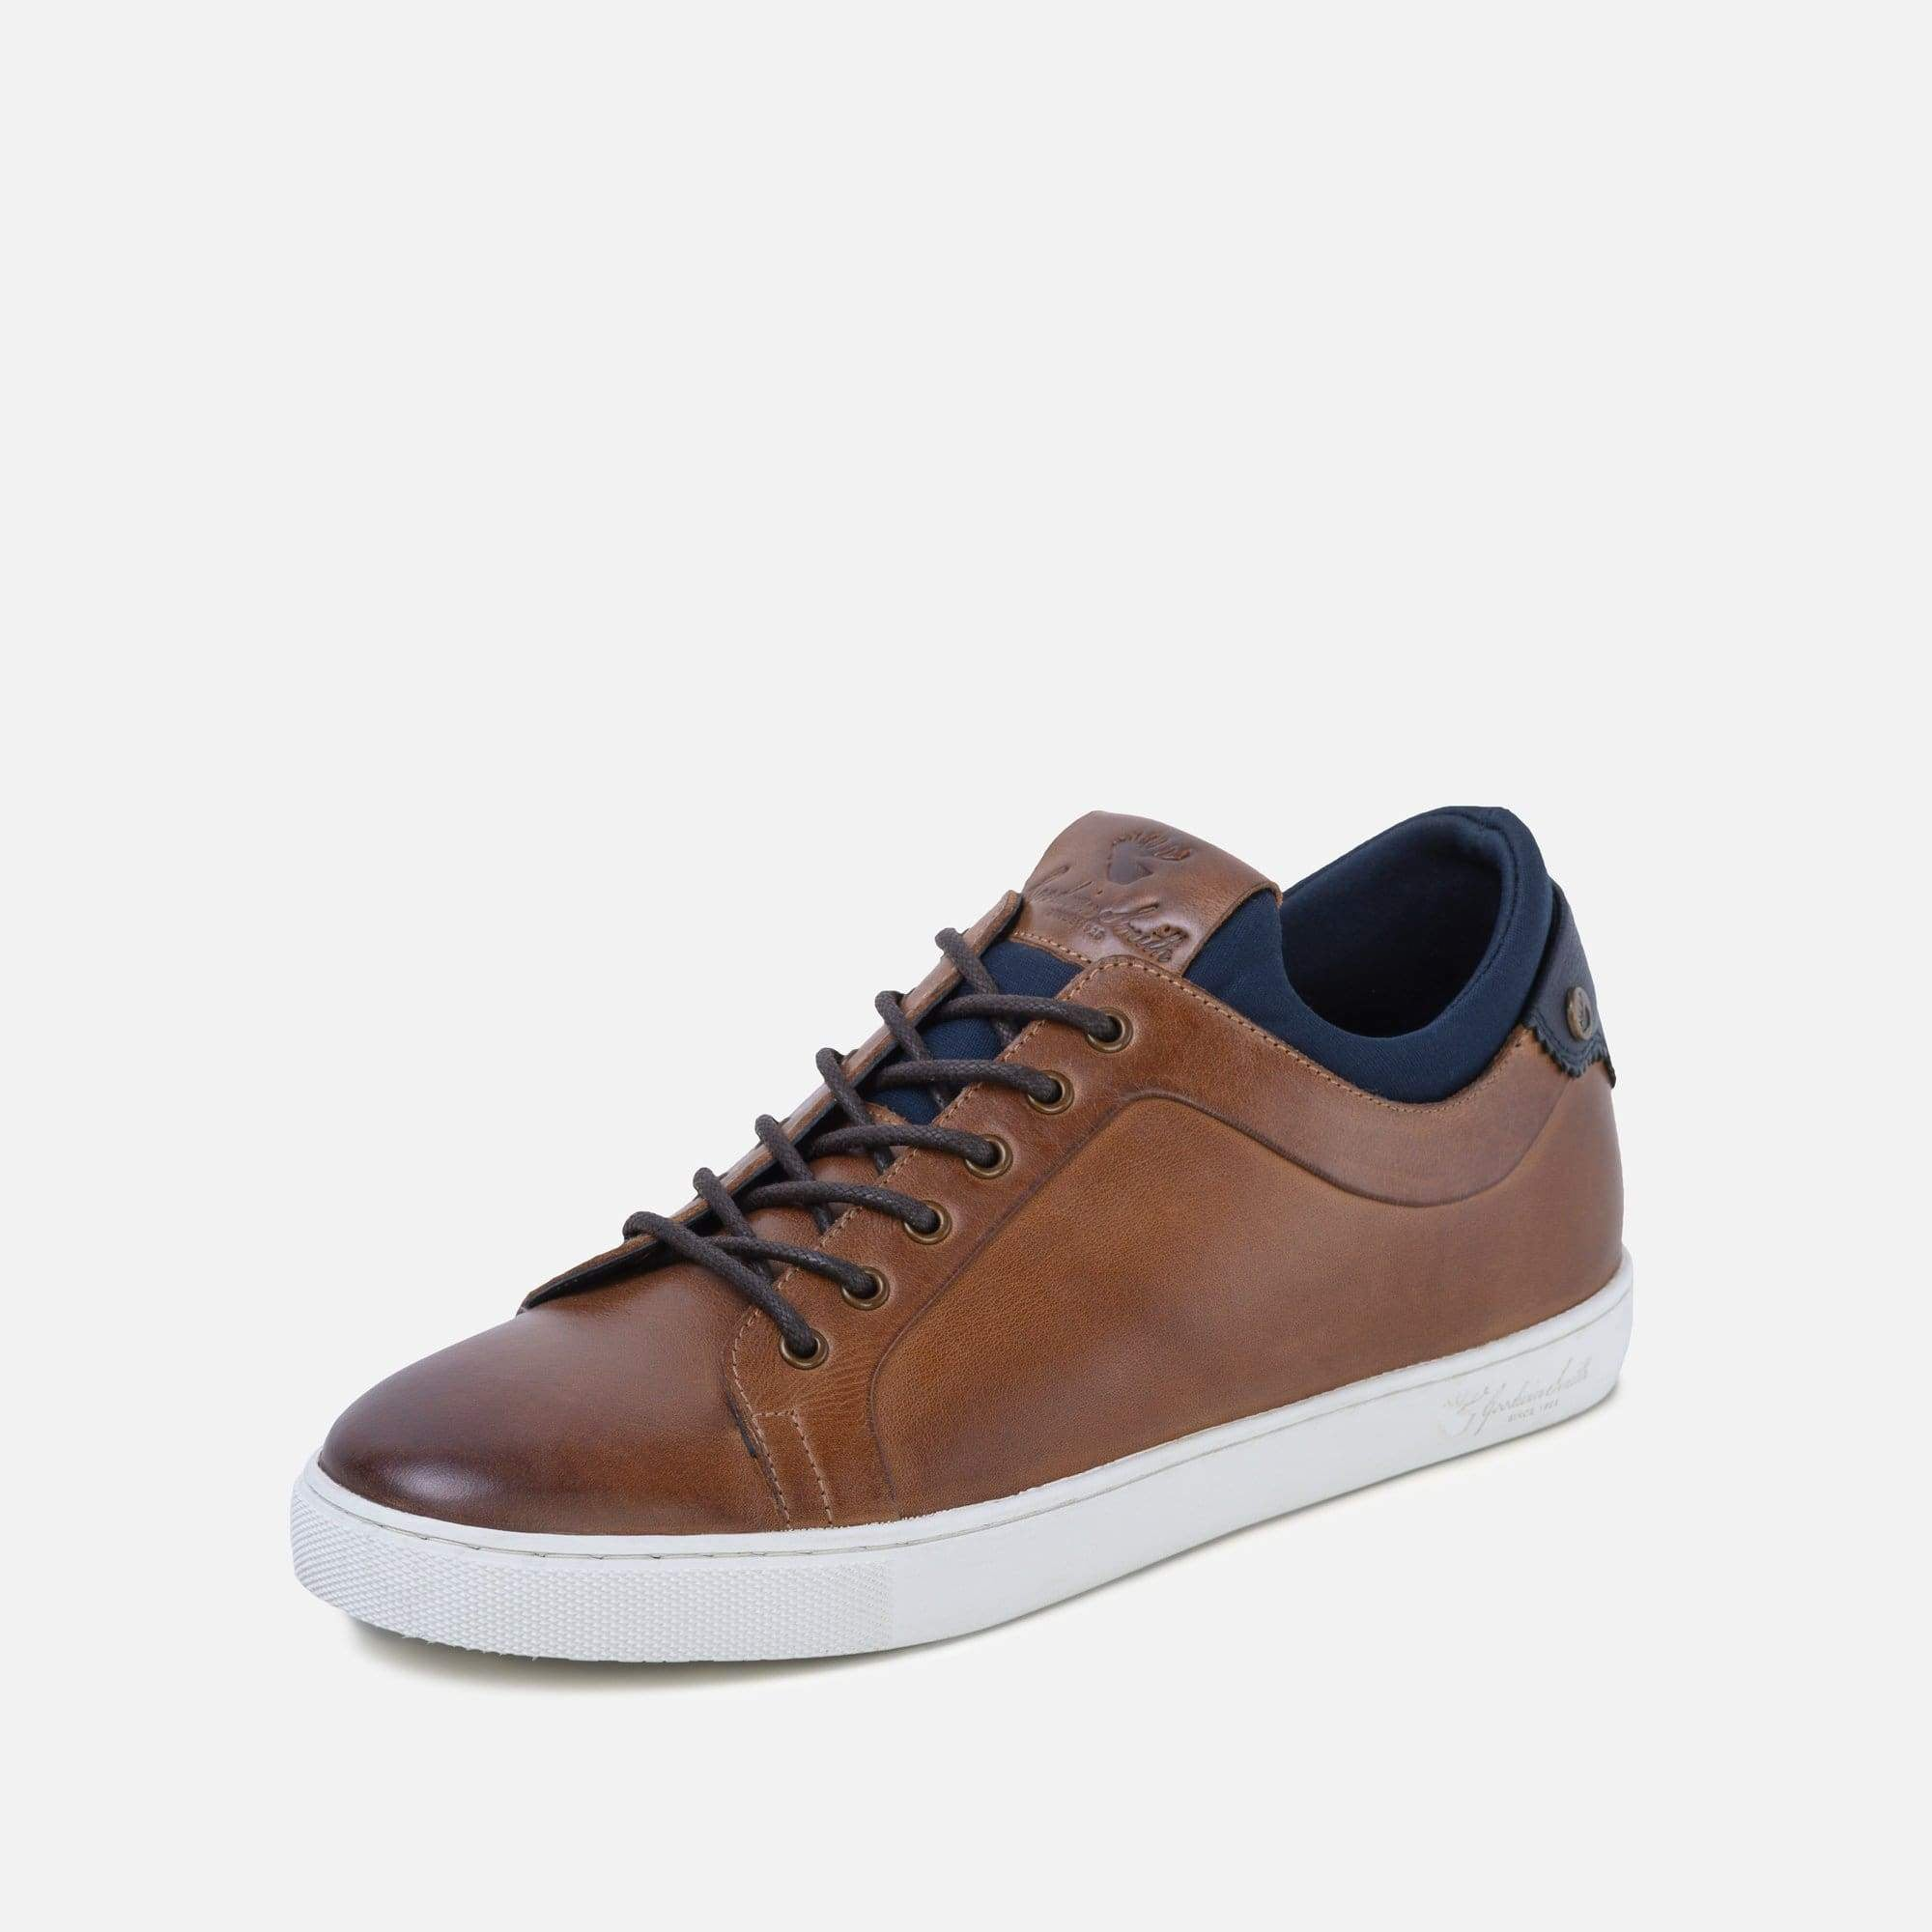 Stitched on TPR plimsoll sole unit on tan plimsoll casual shoes for men